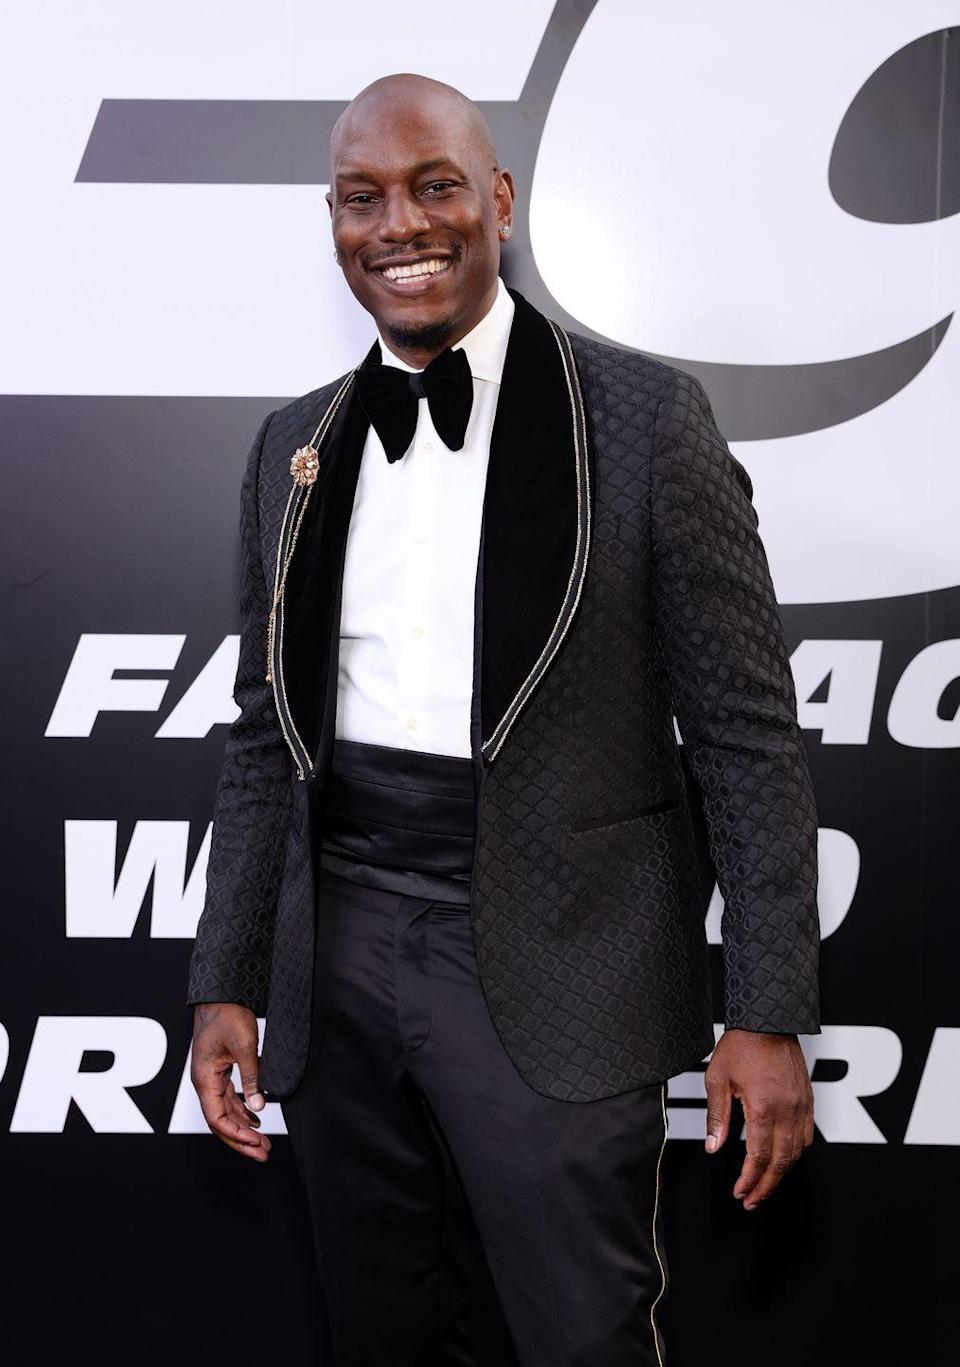 <p>After his <em>Fast and Furious </em>debut, Tyrese Gibson became a longstanding character of the franchise. In between installments, Gibson starred in several other successful films, such as <em>Transformers</em>, <em>Legion</em>, and <em>Annapolis</em>. </p>